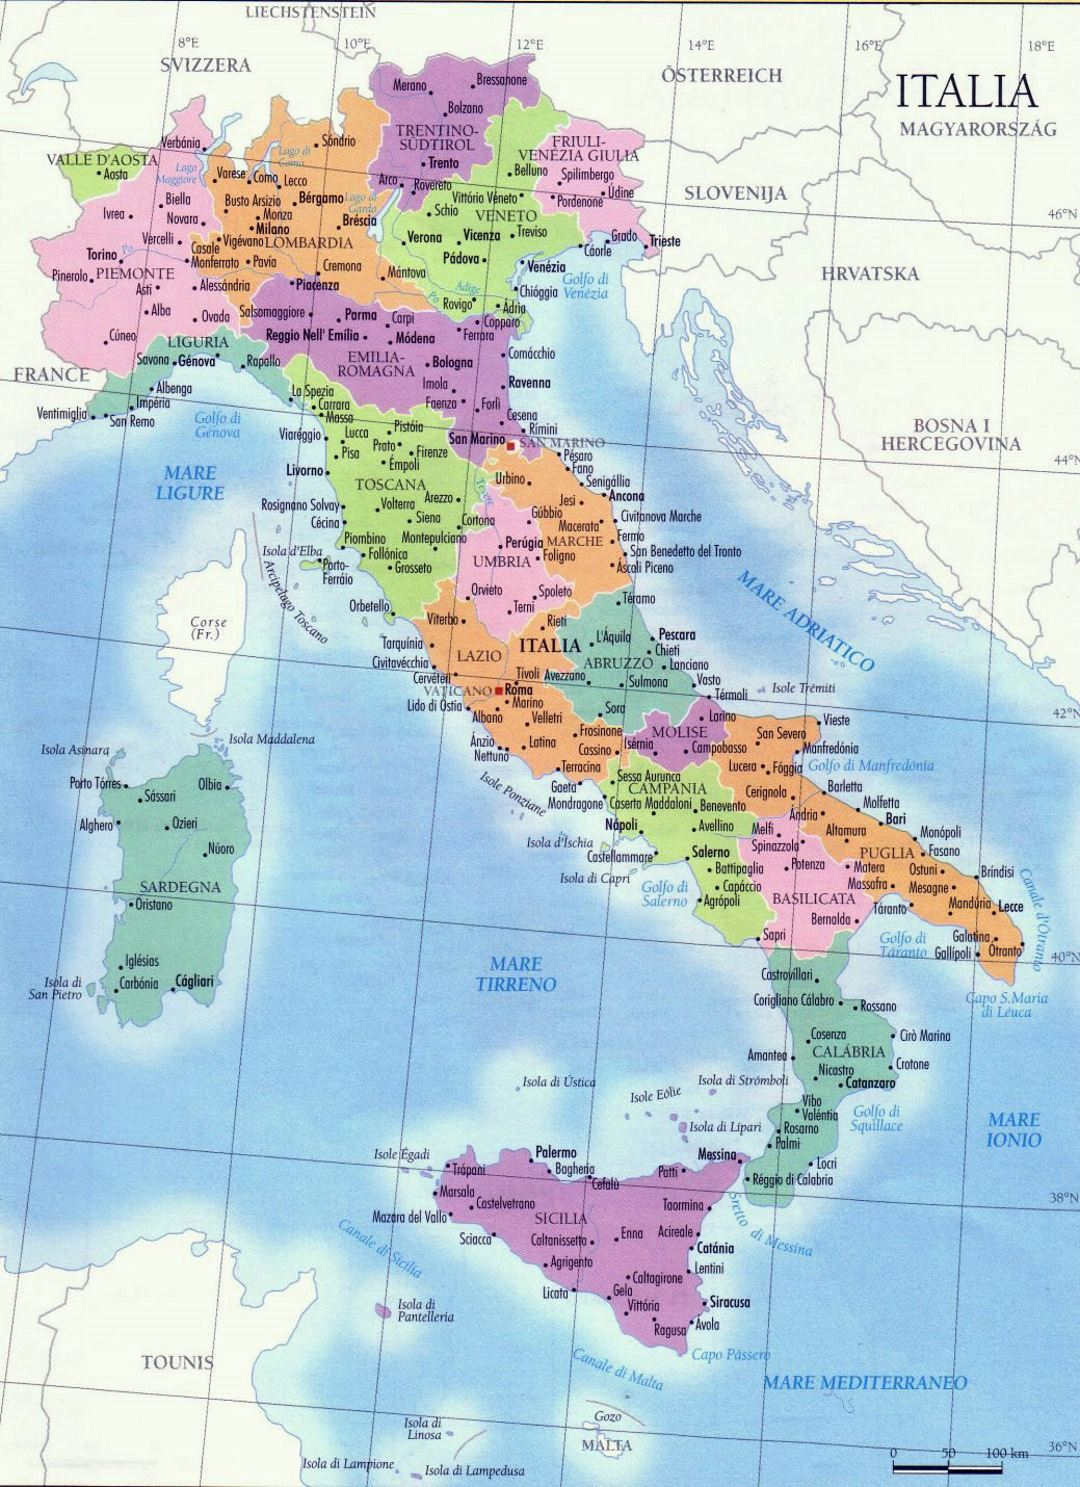 Detailed Regions Map Of Italy With Major Cities Italy Europe - Cities map of italy